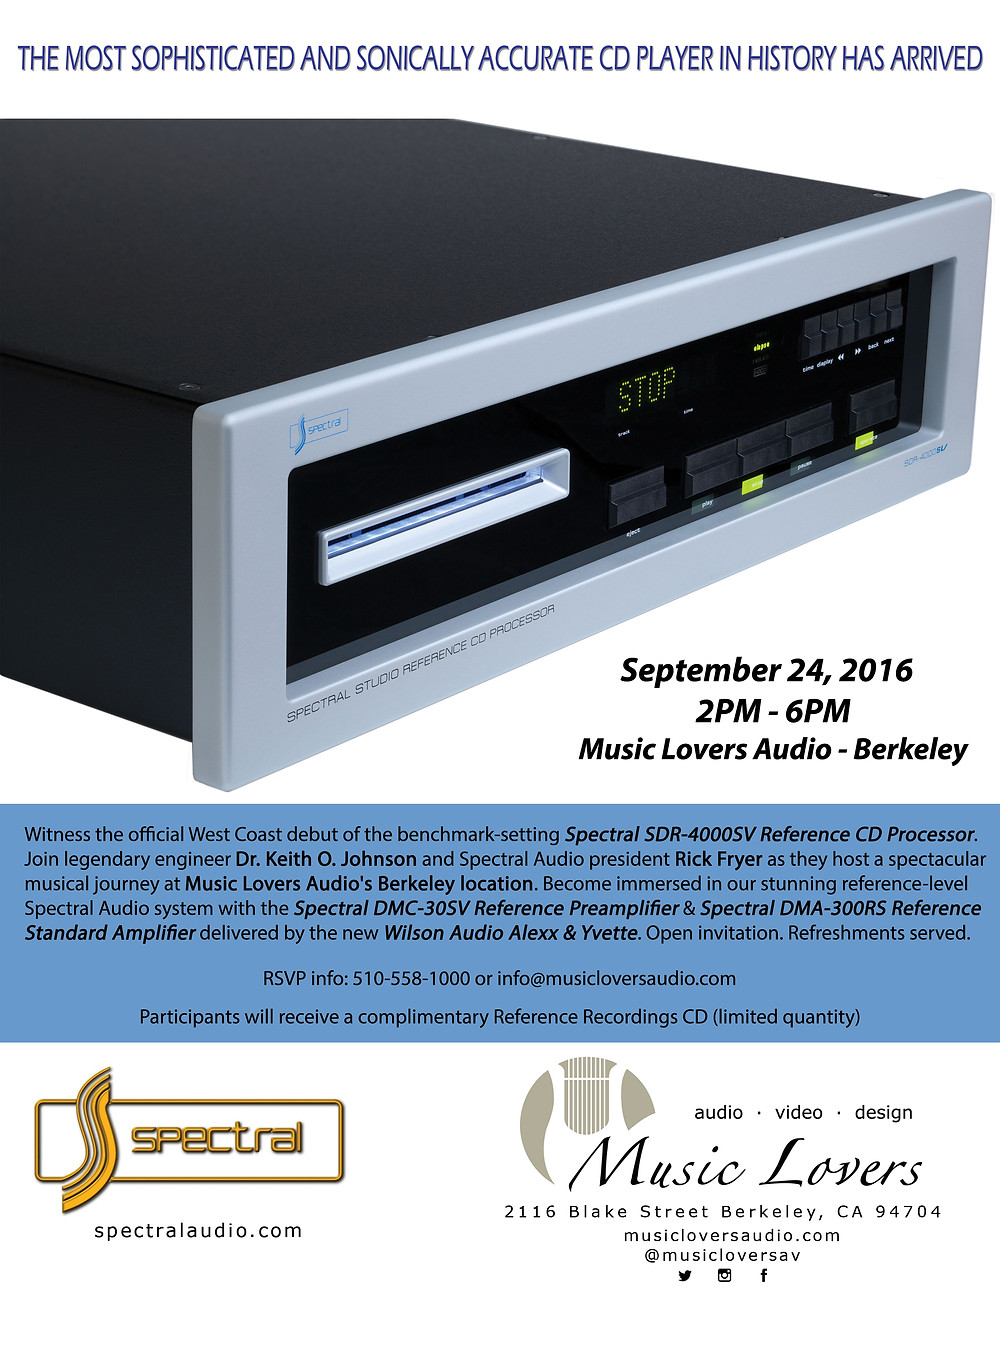 Music Lovers Audio - Spectral Event Ad